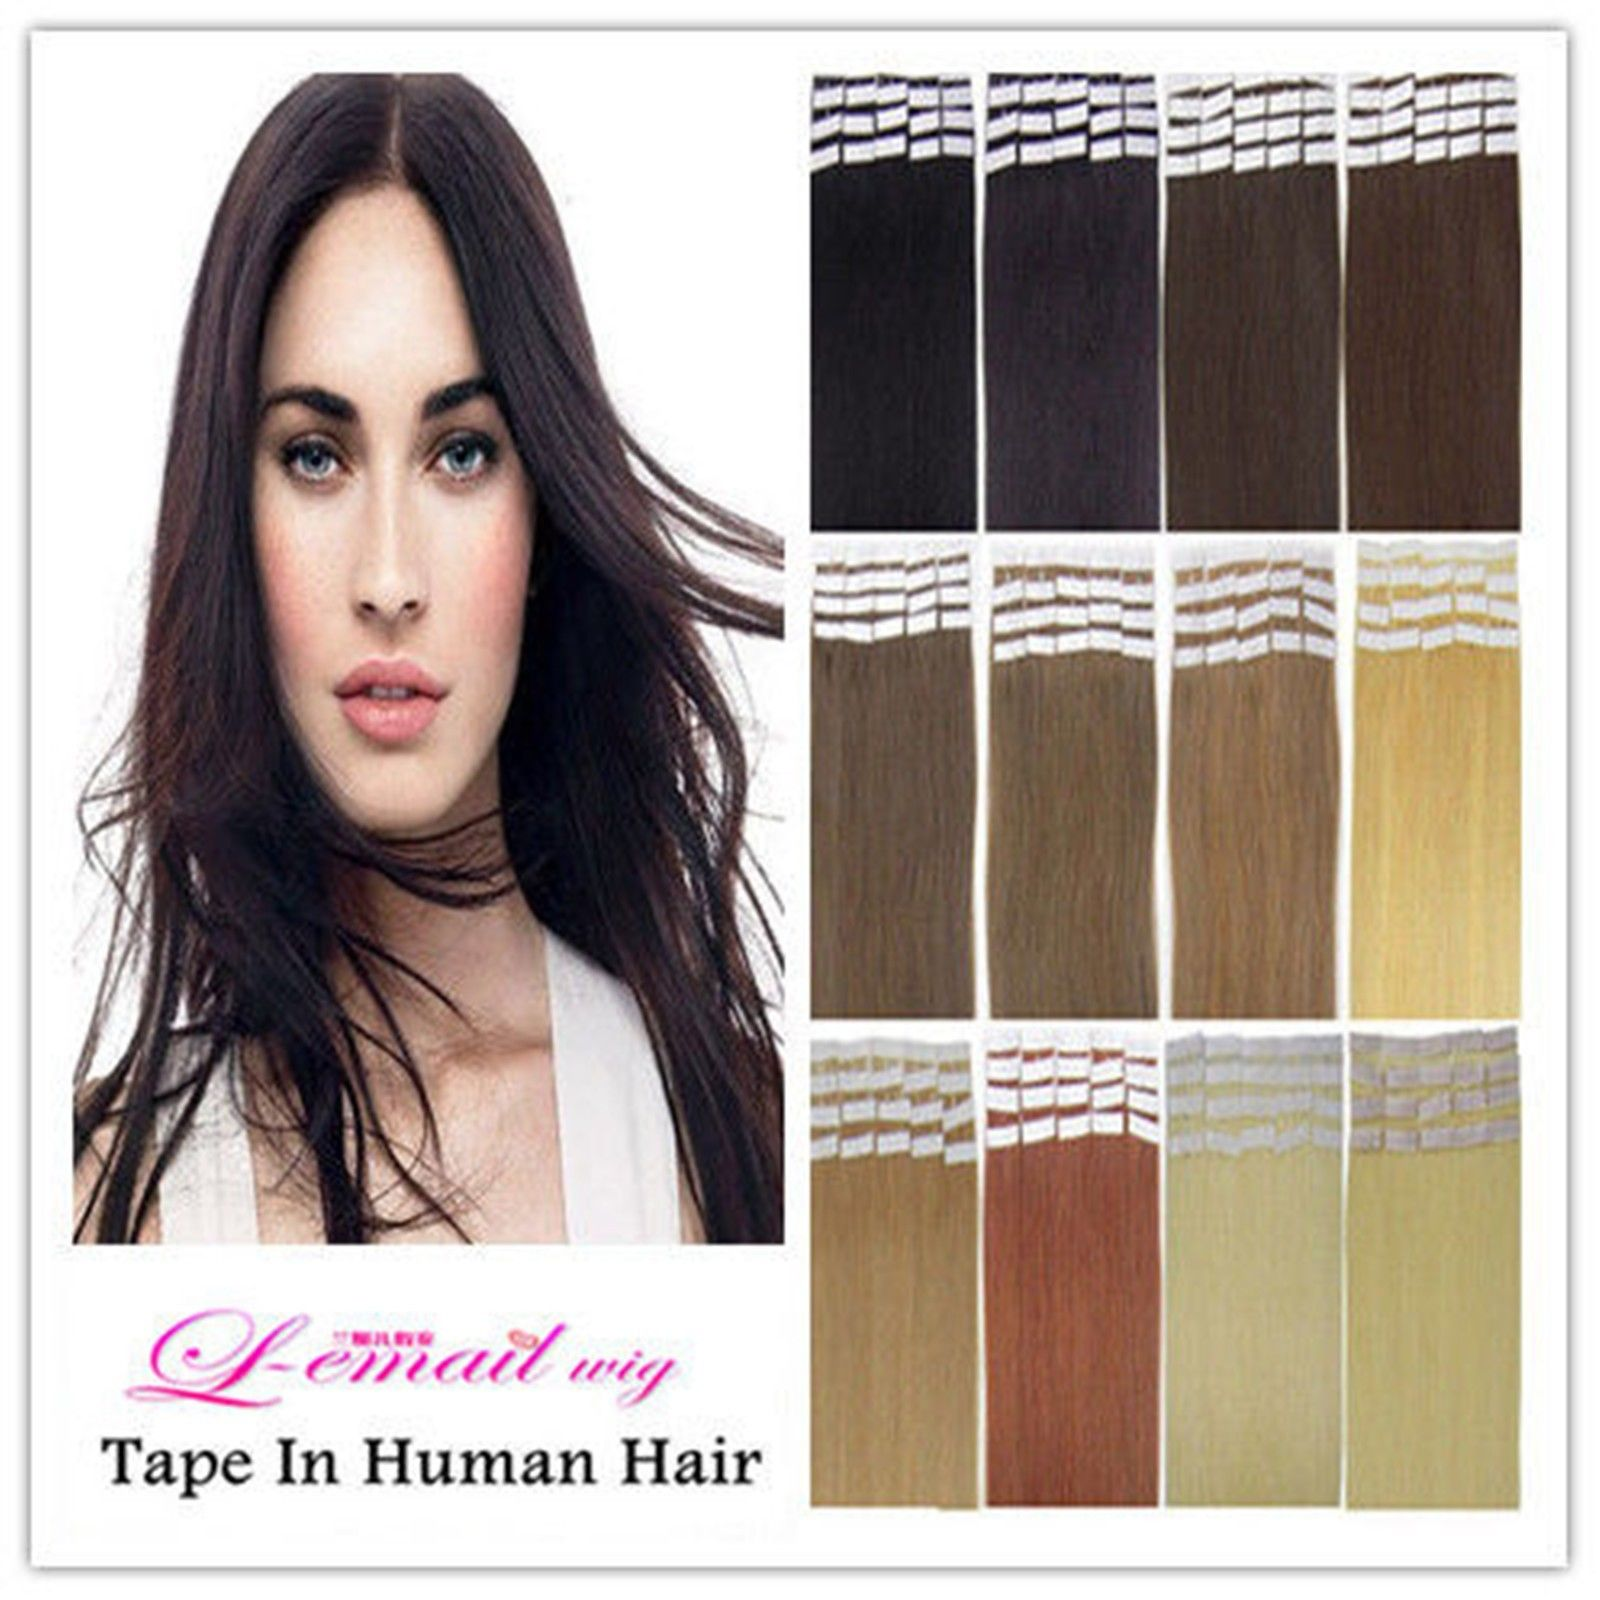 High Quality Dark Ash Blonde tape india human 18 inch 2.5g/piece Straight skin weft hair extensions(China (Mainland))